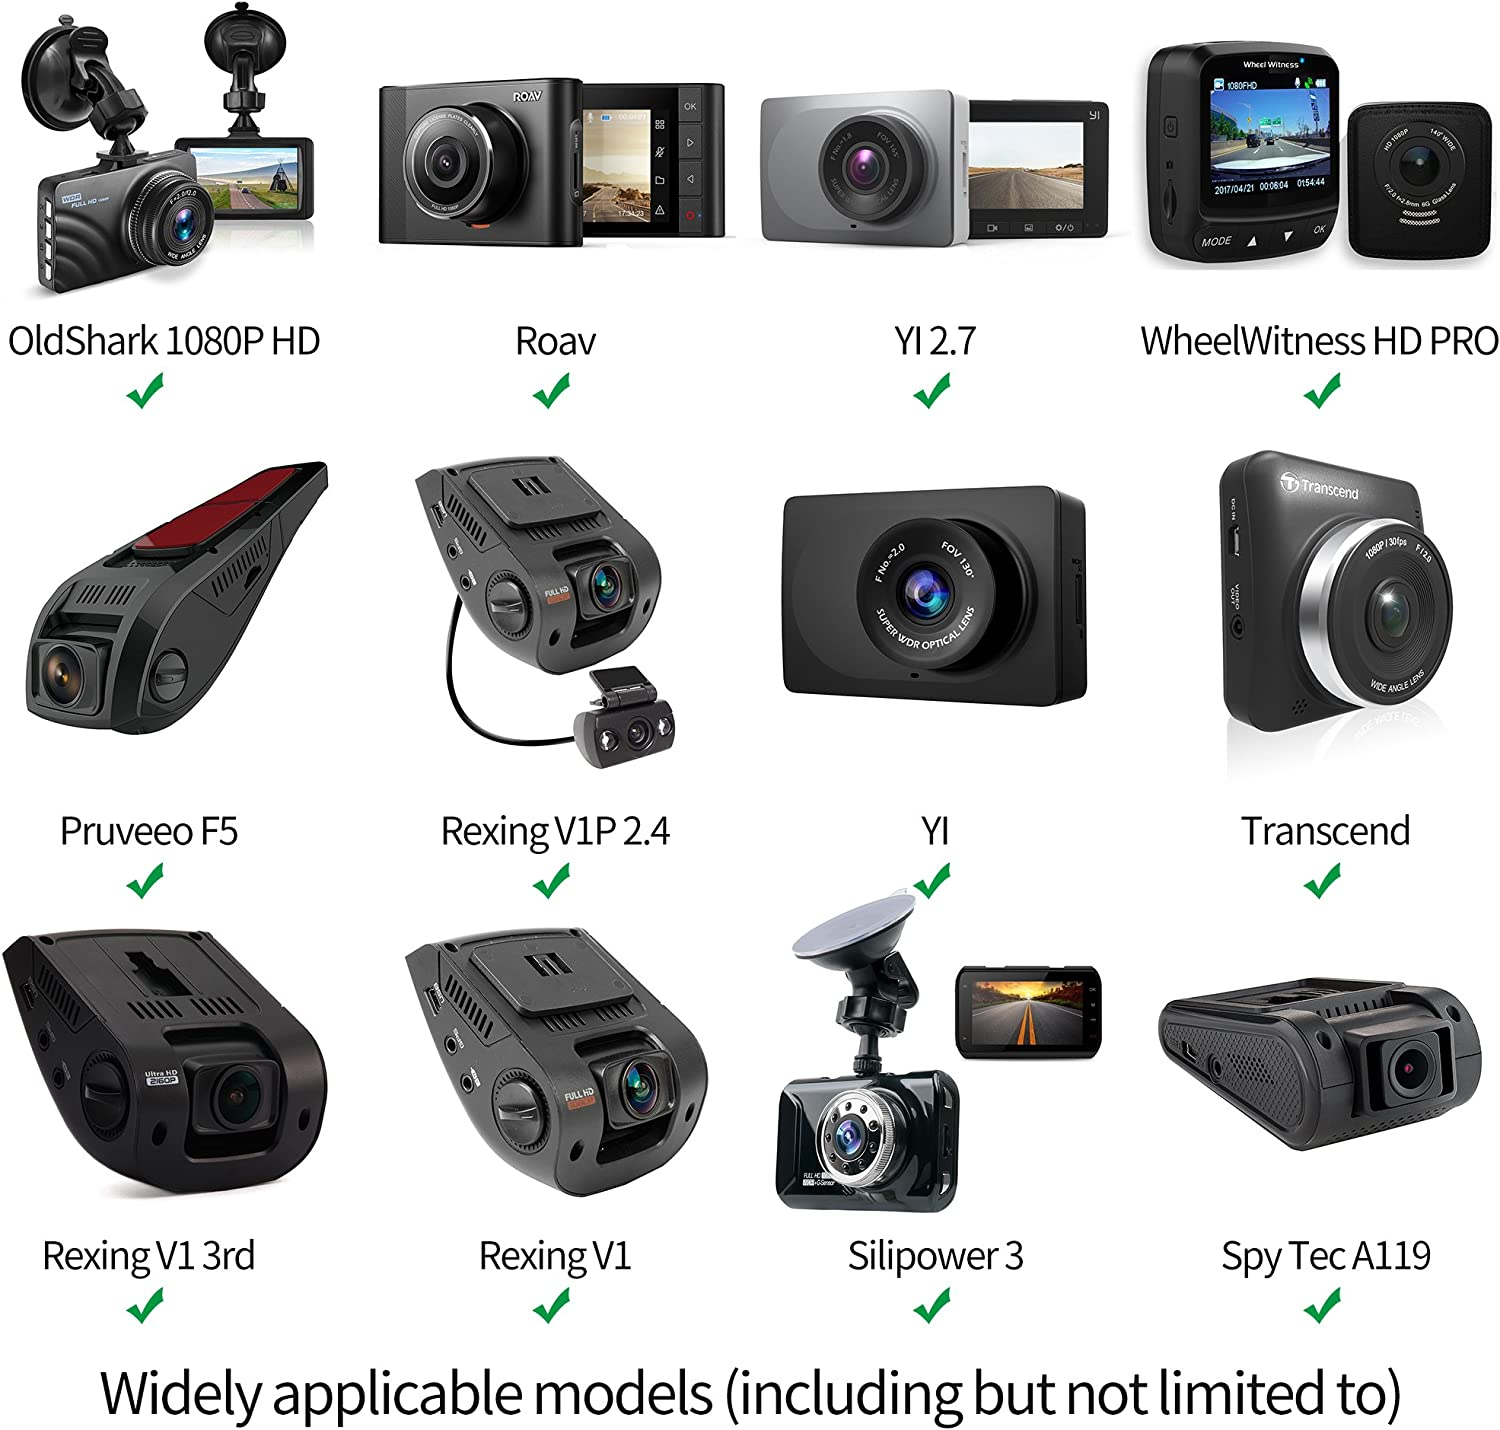 KDLINKS X1 YI Nightscape Dash Cam Mirror Mount for YI 2.7 UGSHD Rexing V1 Fit for 99/% Dash Cam//DVR AUKEY Z-Edge Crosstour and Most Other Dash Camera Old Shark